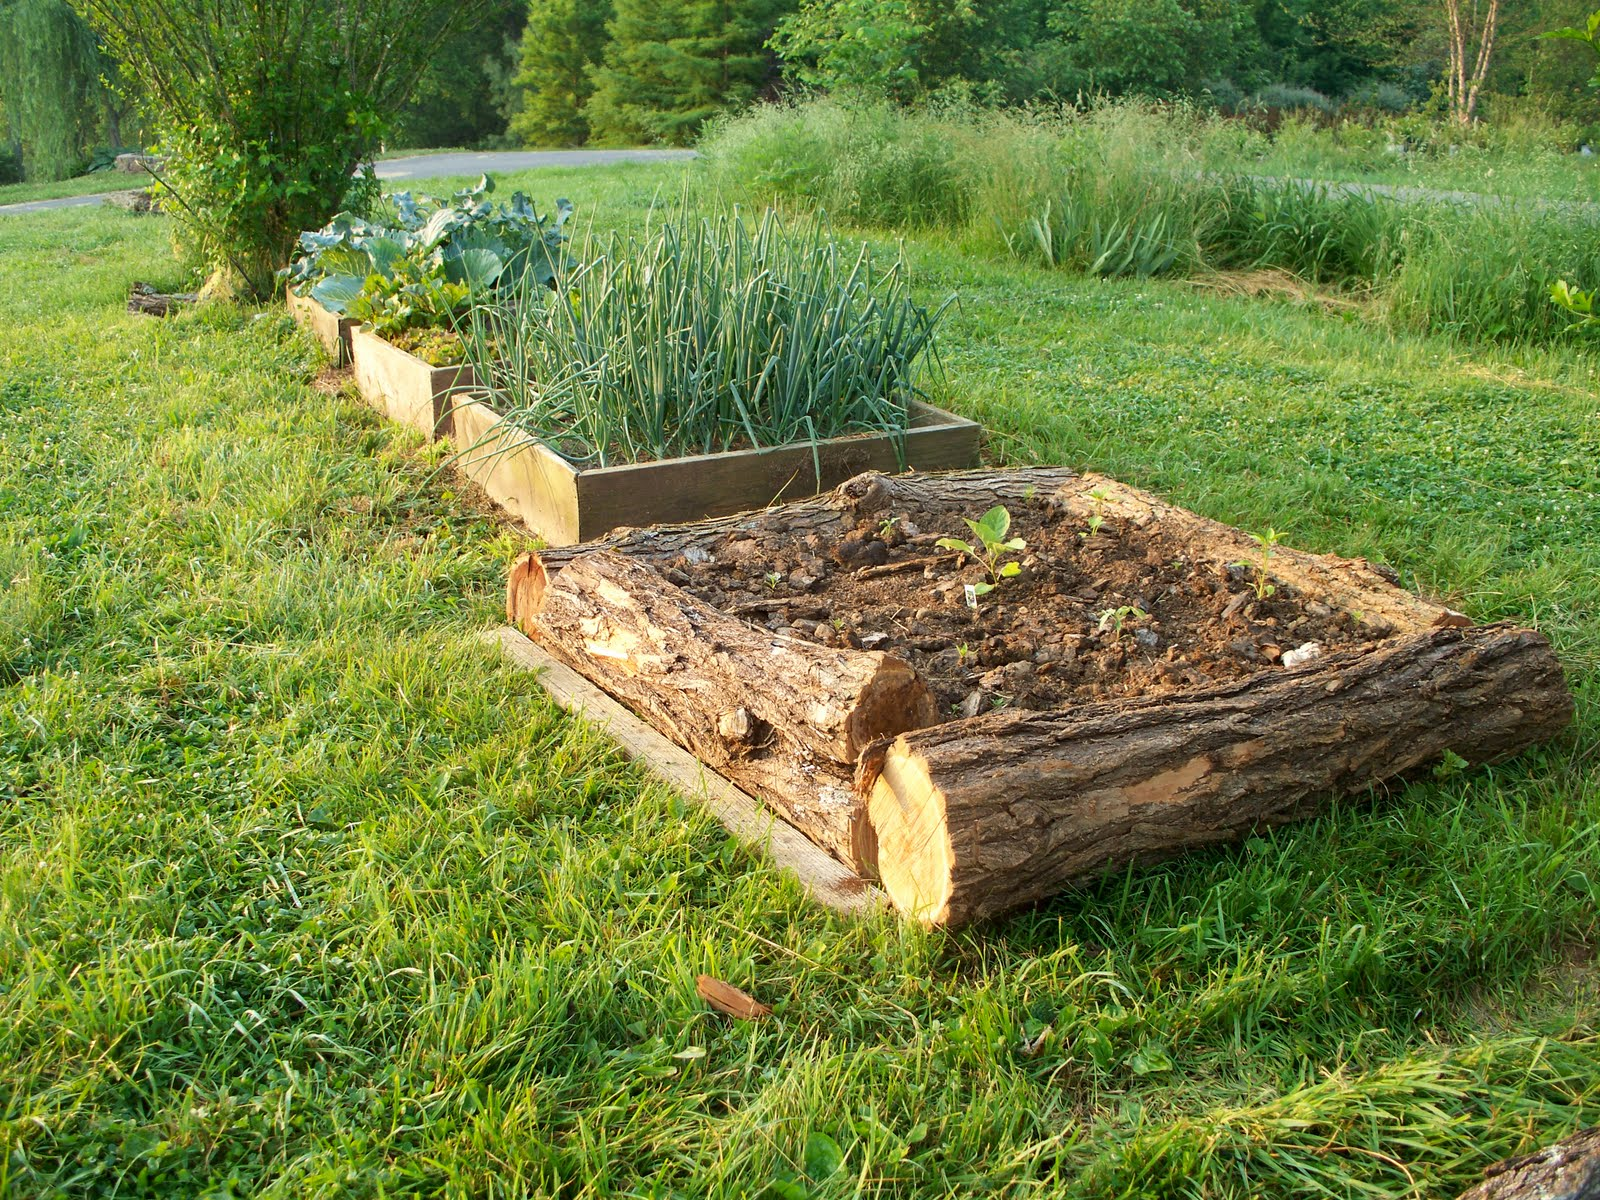 This Is The Newest Of The Raised Beds The Big Logs Were Heavy To